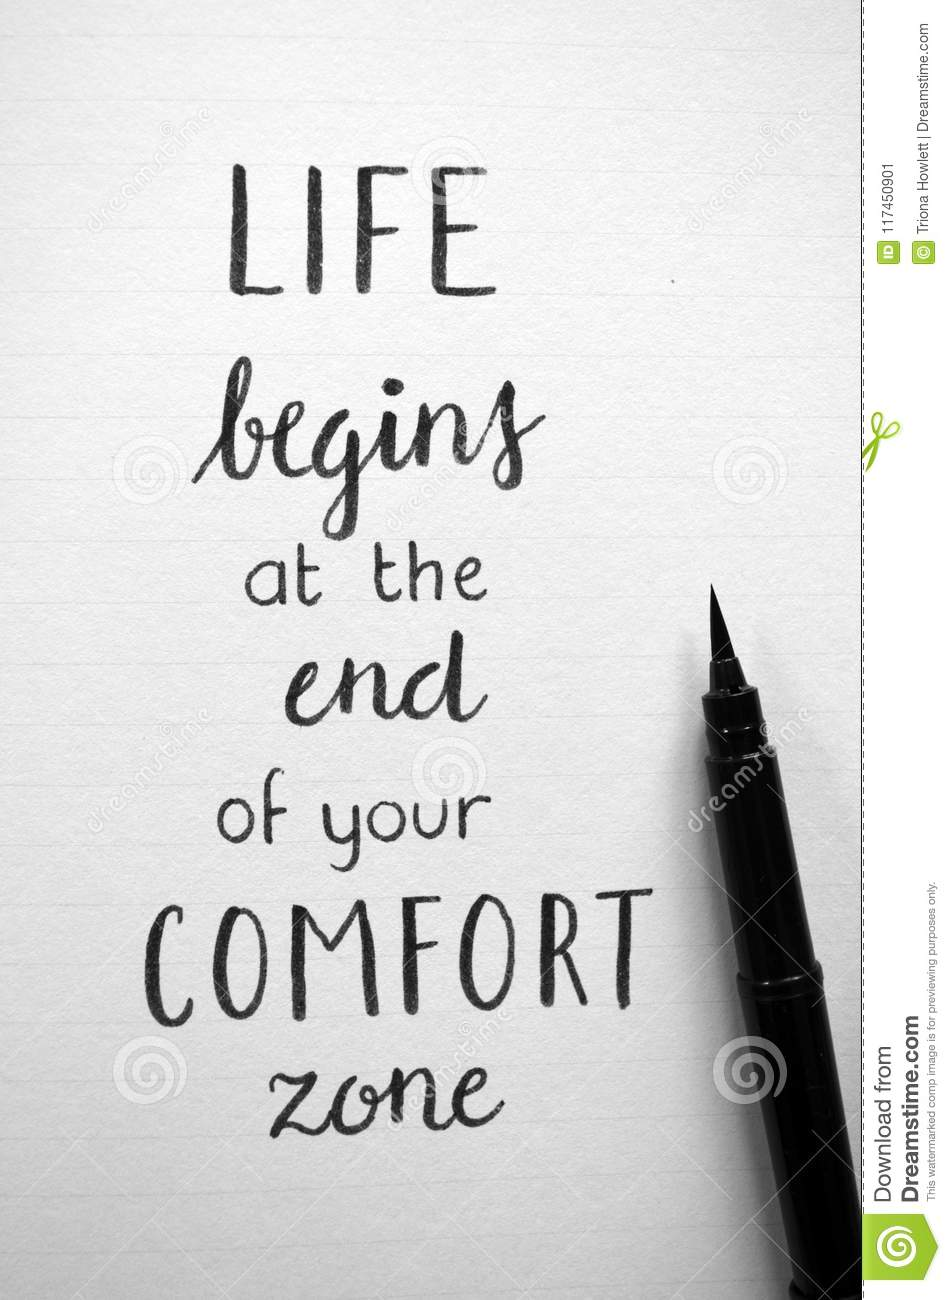 Life Begins At The End Of Your Comfort Zone Quote : begins, comfort, quote, Close-up, `LIFE, BEGINS, COMFORT, ZONE`, Hand-lettered, Notebook, Stock, Image, Lettering,, Comfort:, 117450901